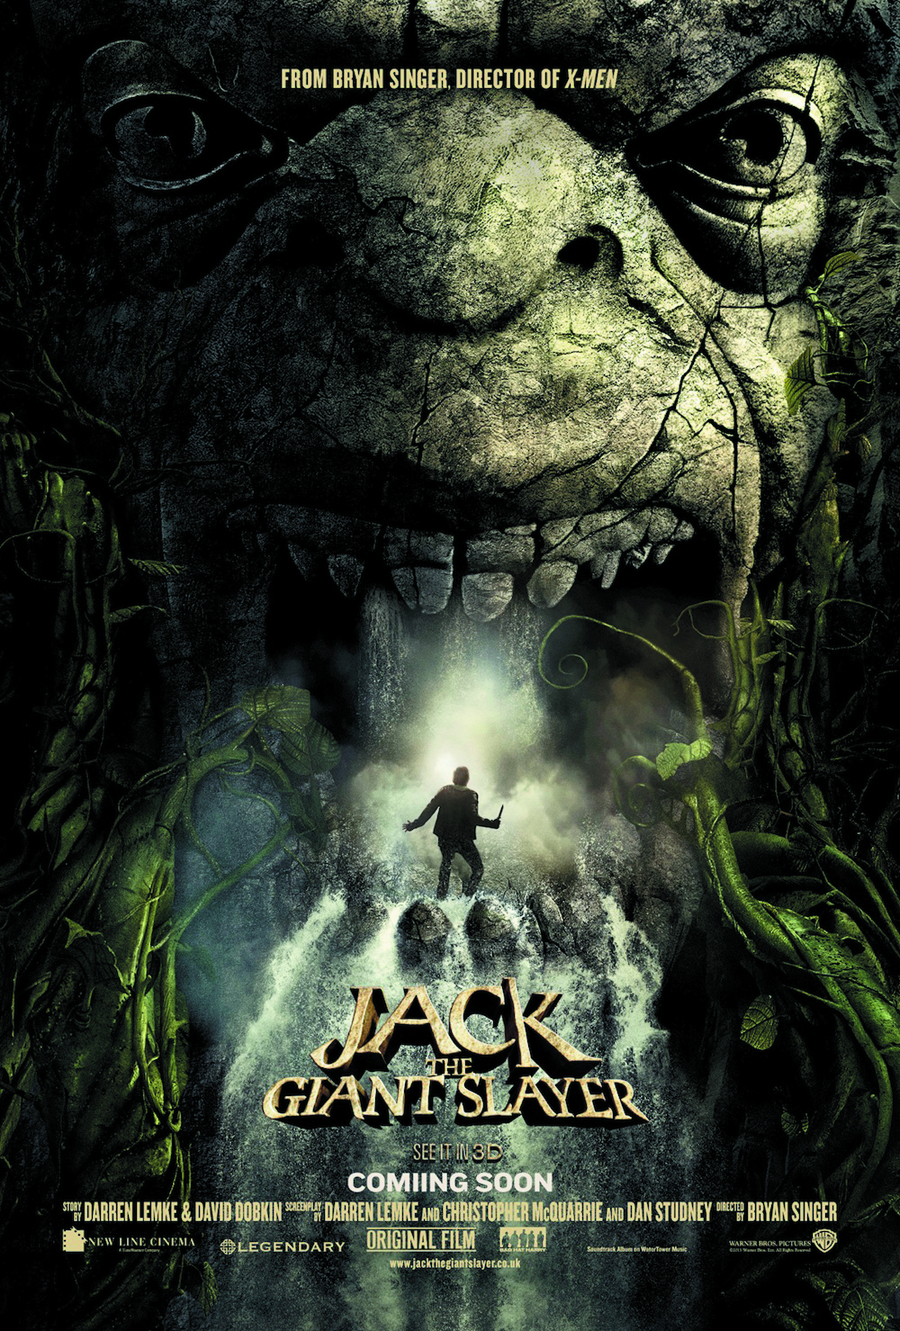 JACK THE GIANT SLAYER BD + DVD